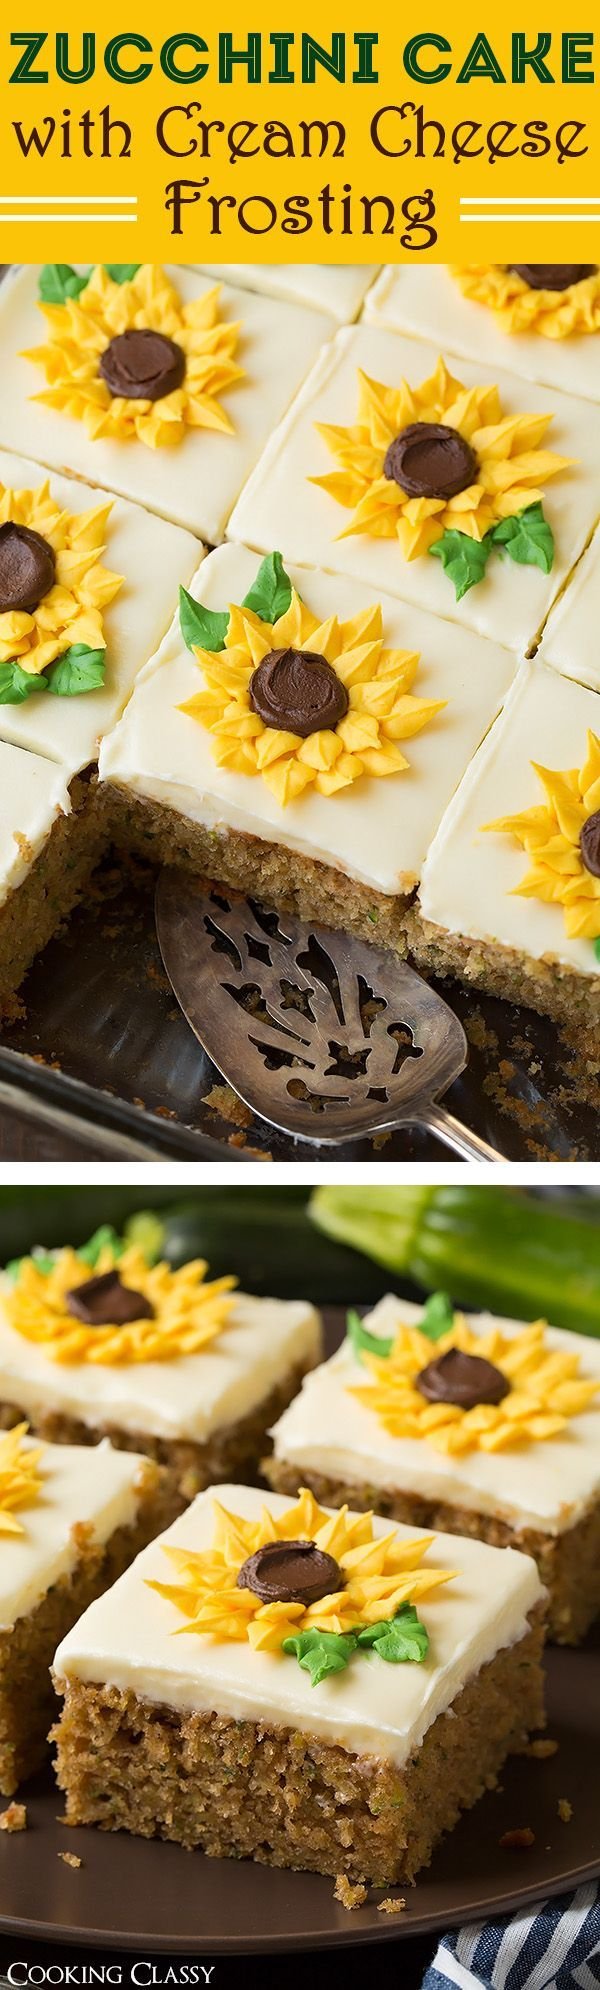 Zucchini Cake With Cream Cheese Frosting And Fruit